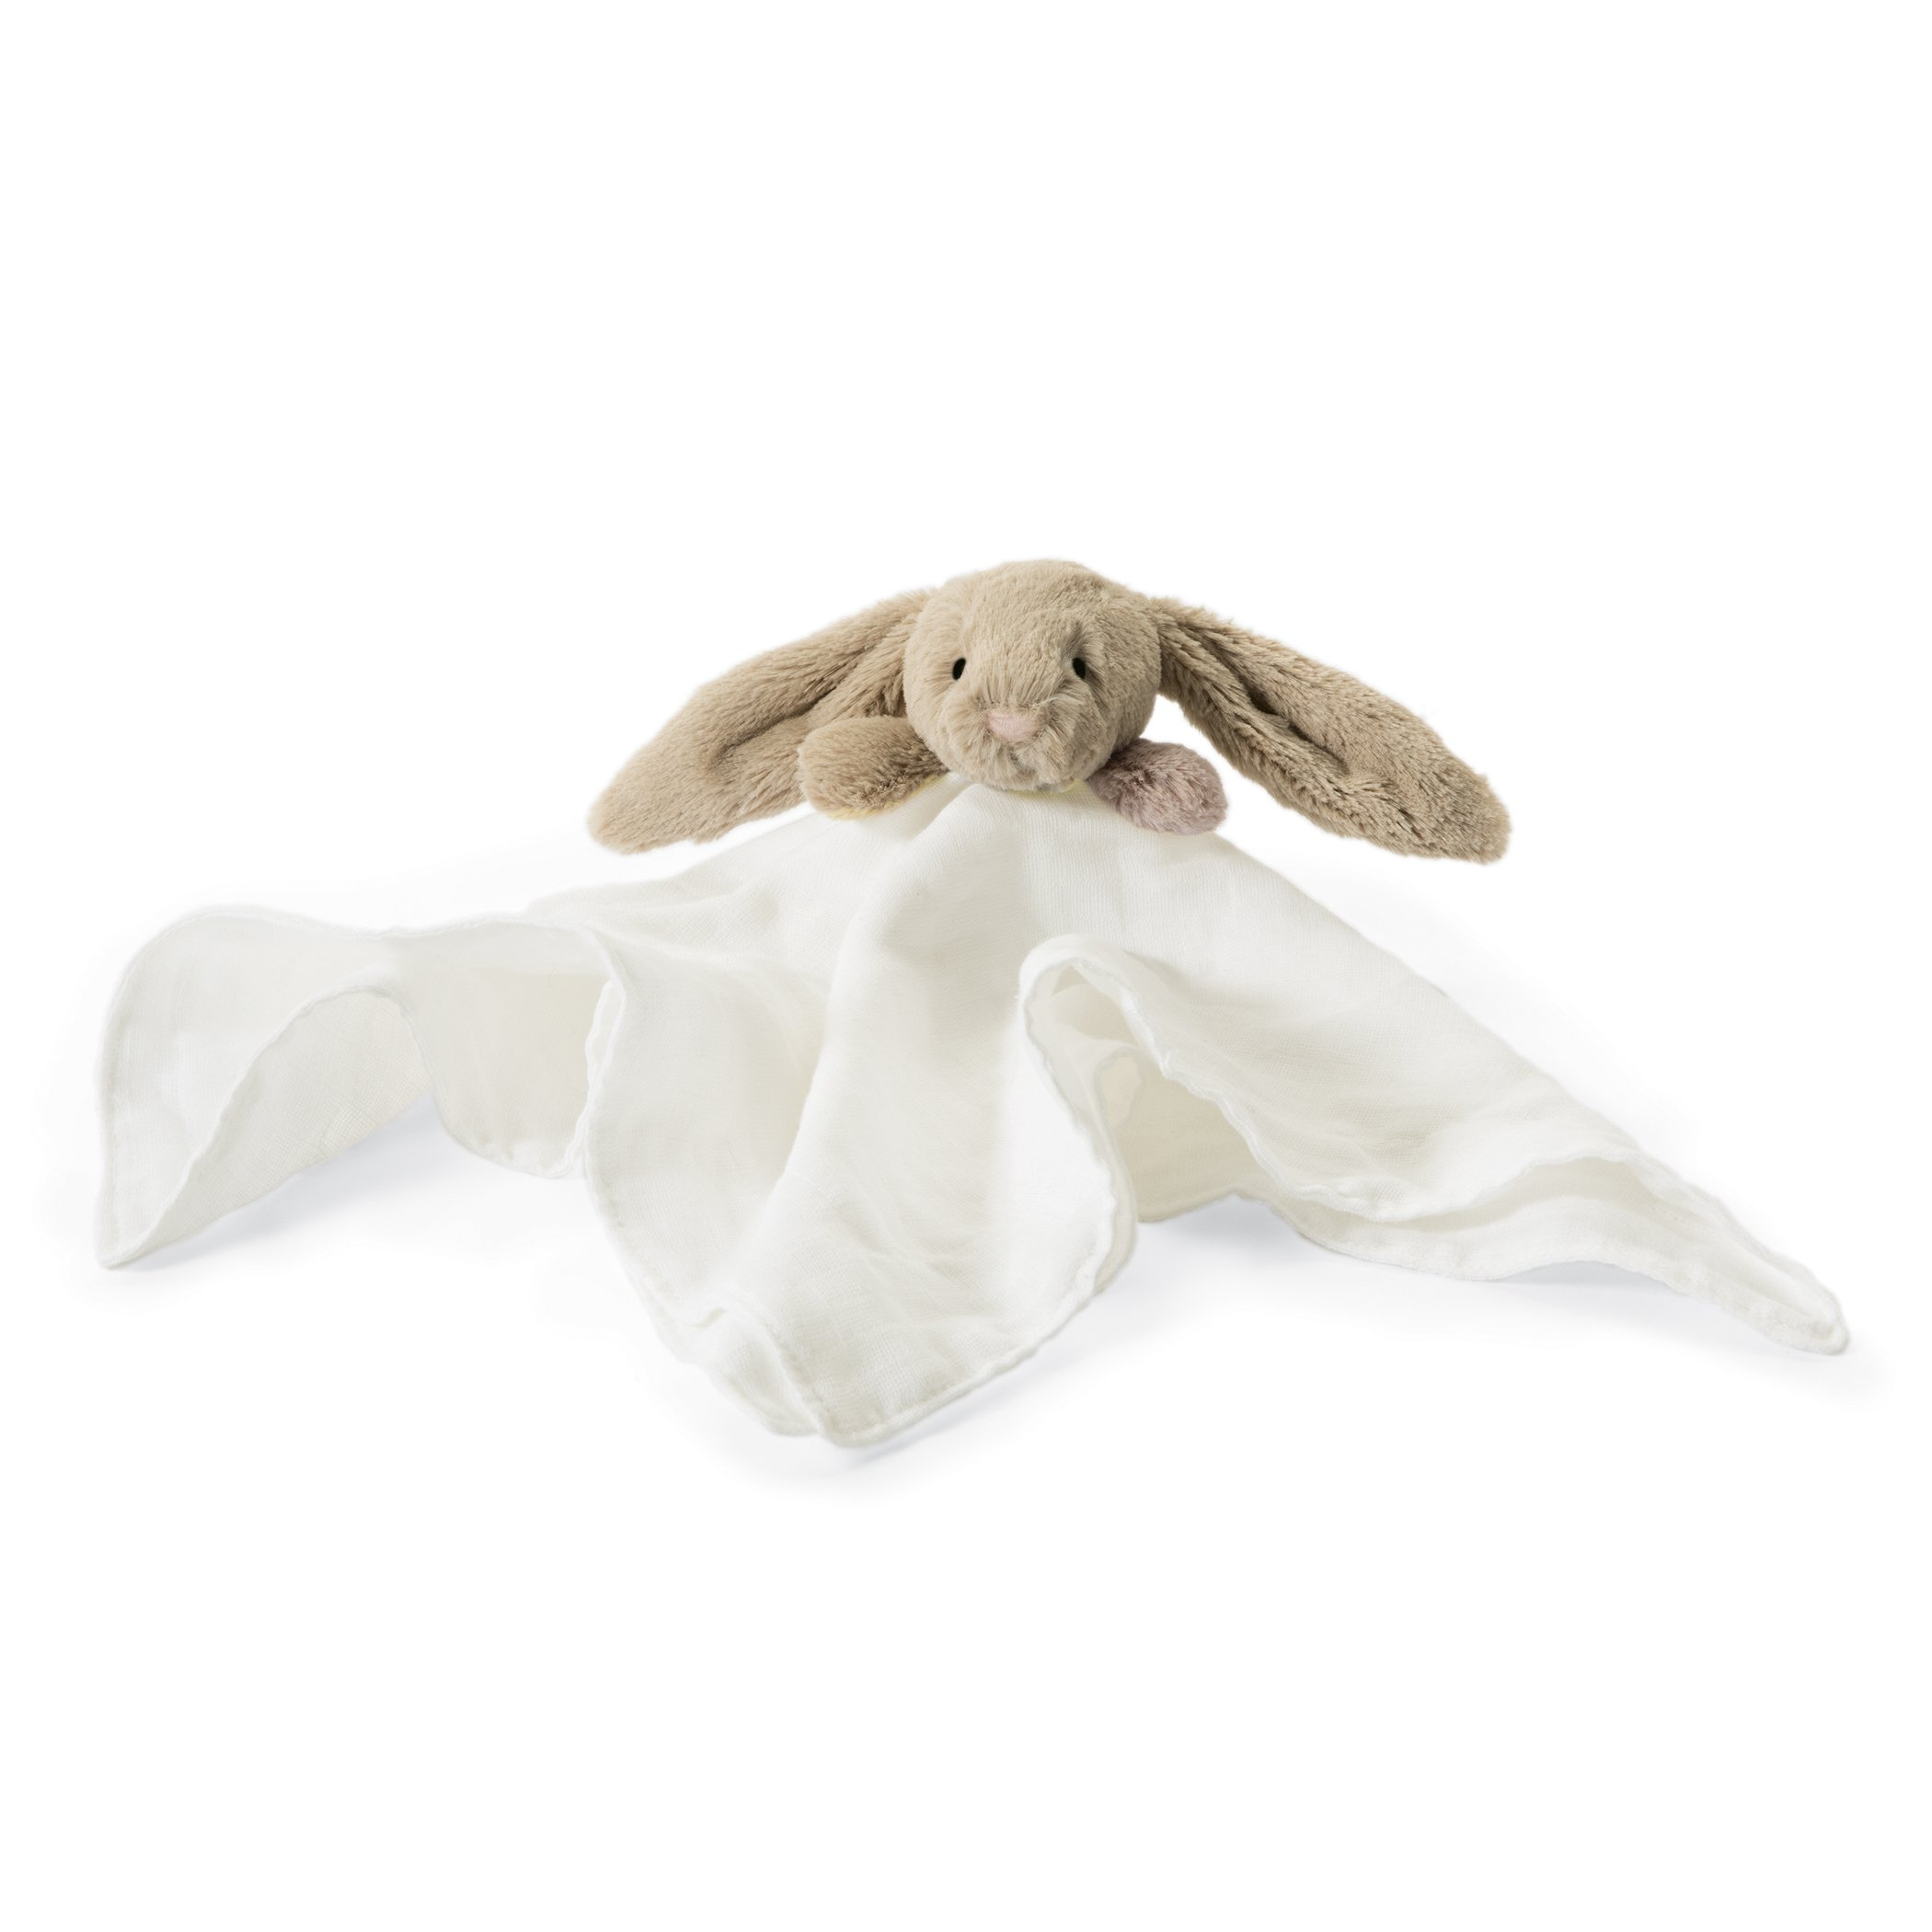 Jellycat Bashful Beige Bunny Muslin Soother Baby Security Blanket, 15 inches x 15 inches